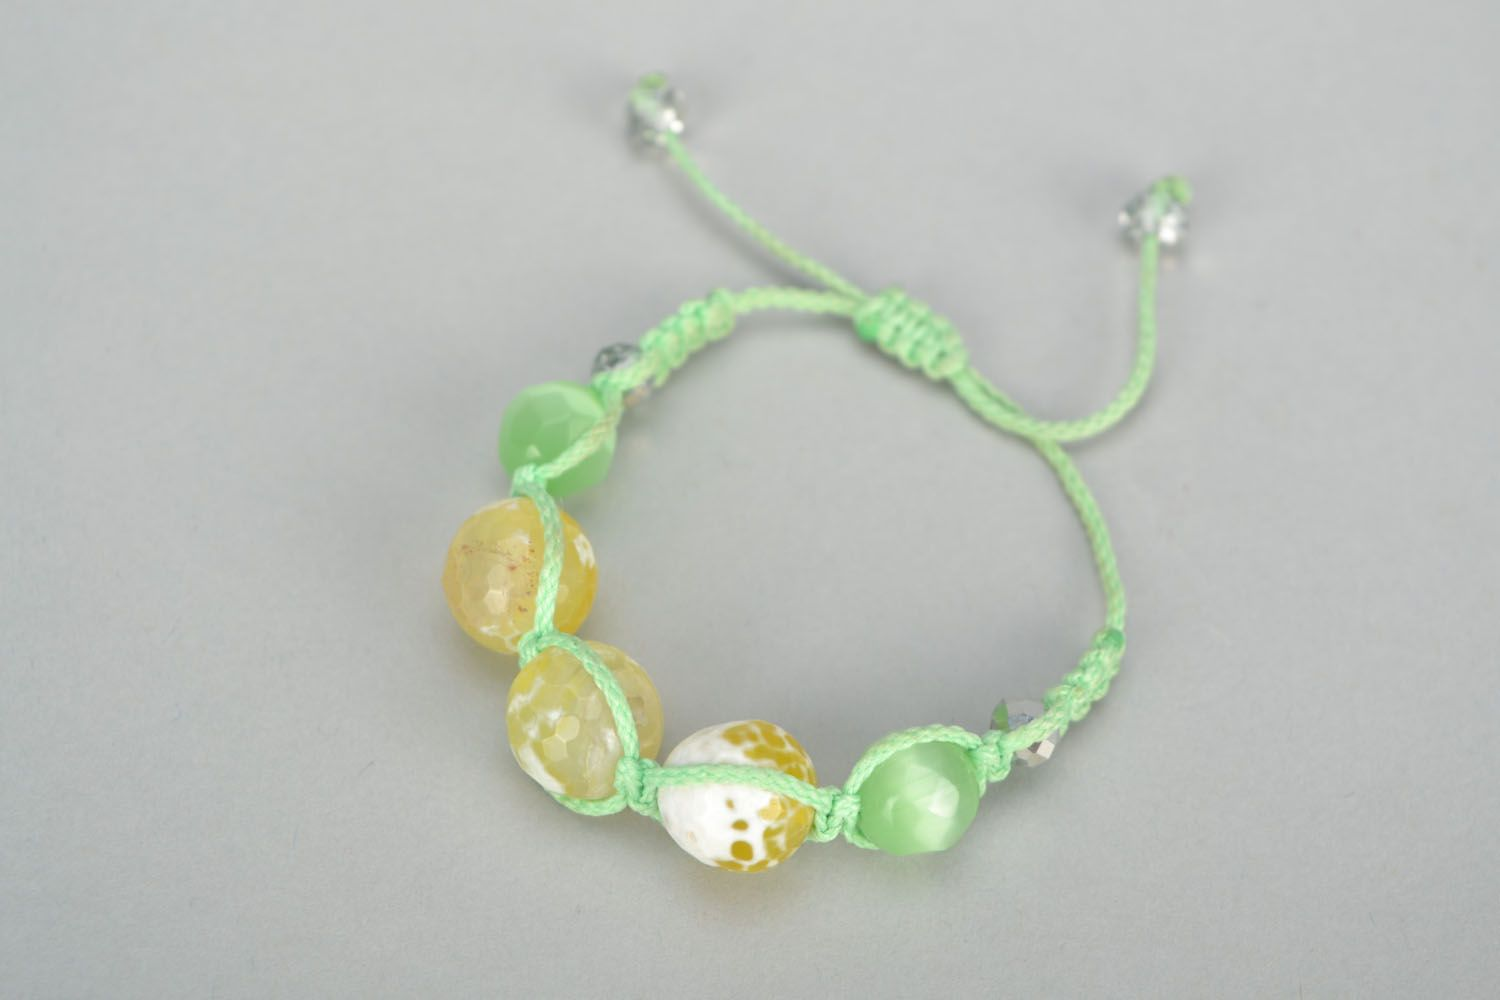 Woven bracelet with cat's eye stone photo 2